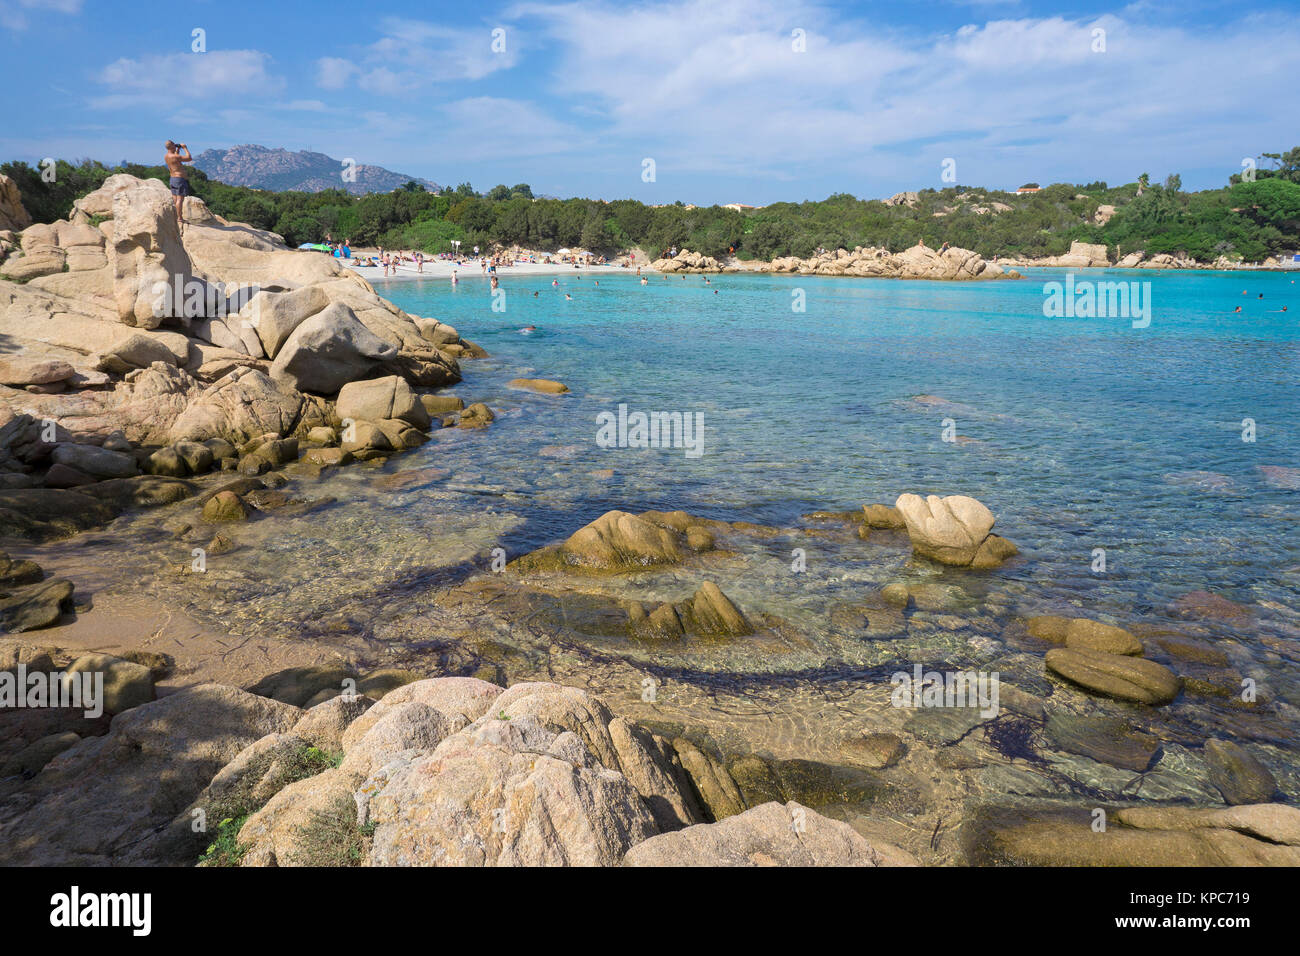 Idyllic beach with turquoise colour sea and granite rocks at Capriccioli, Costa Smeralda, Sardinia, Italy, Mediterranean Stock Photo